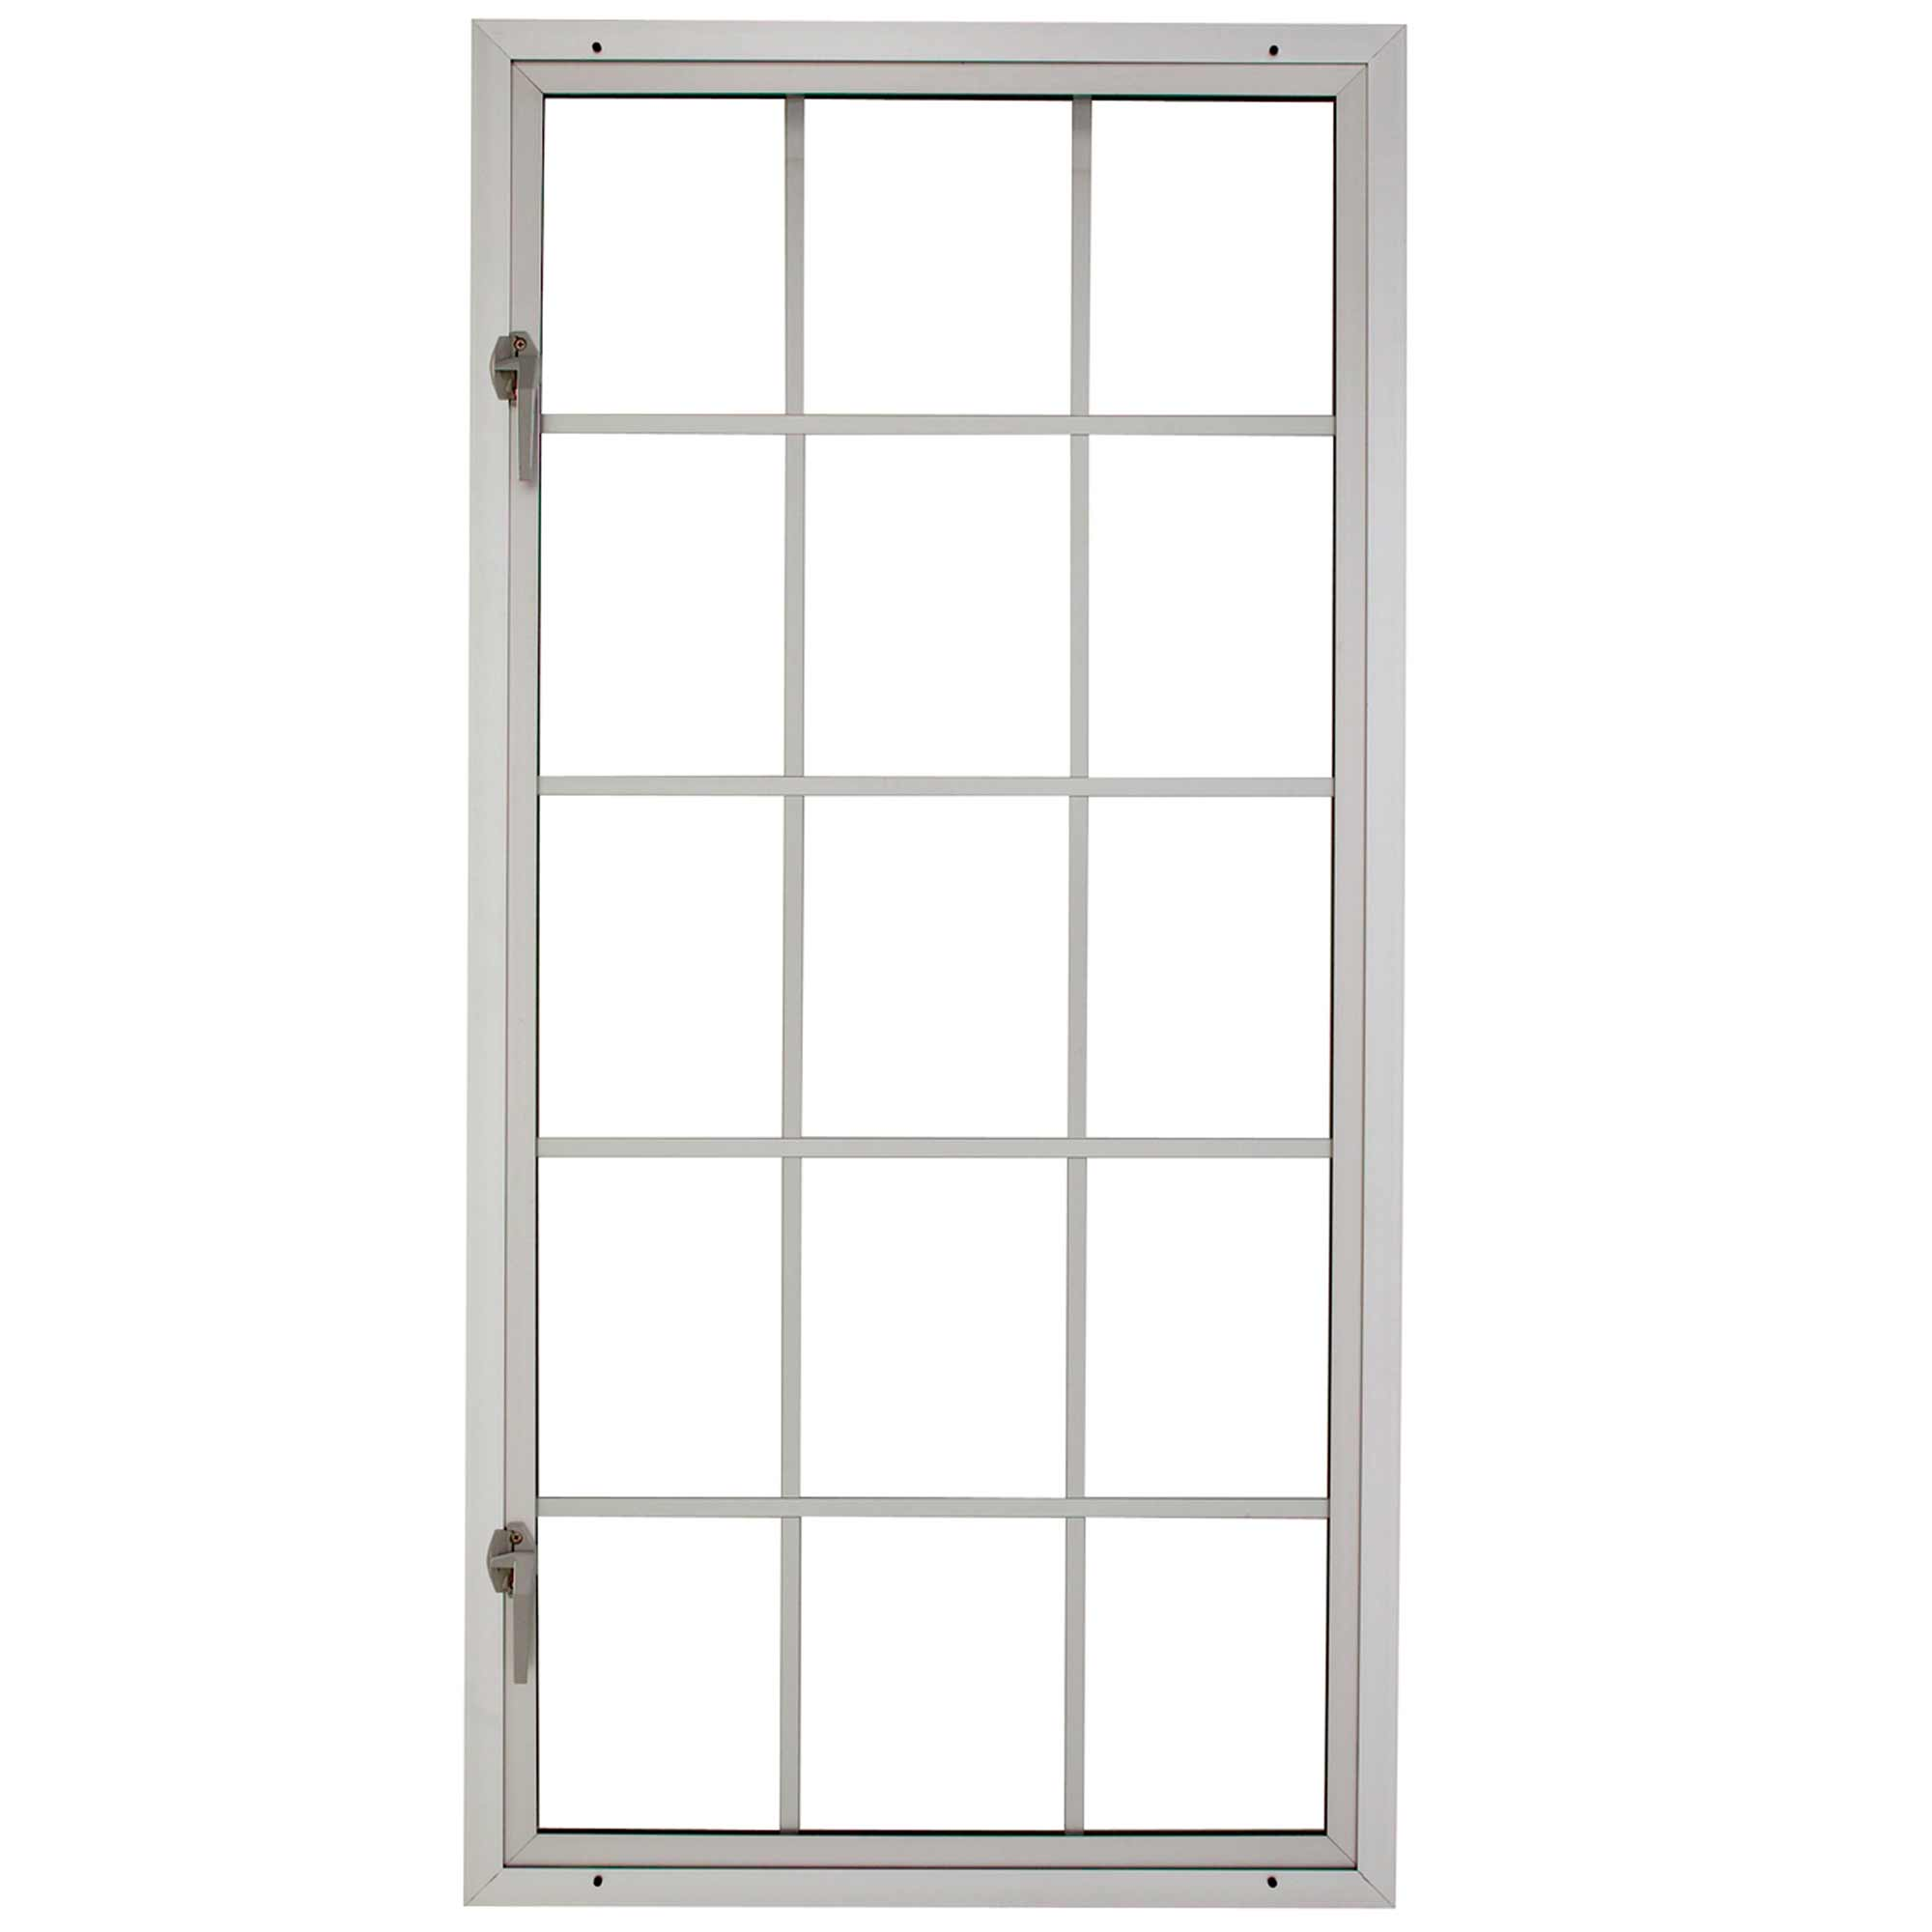 Milgard contemporary aluminum windows for open casement